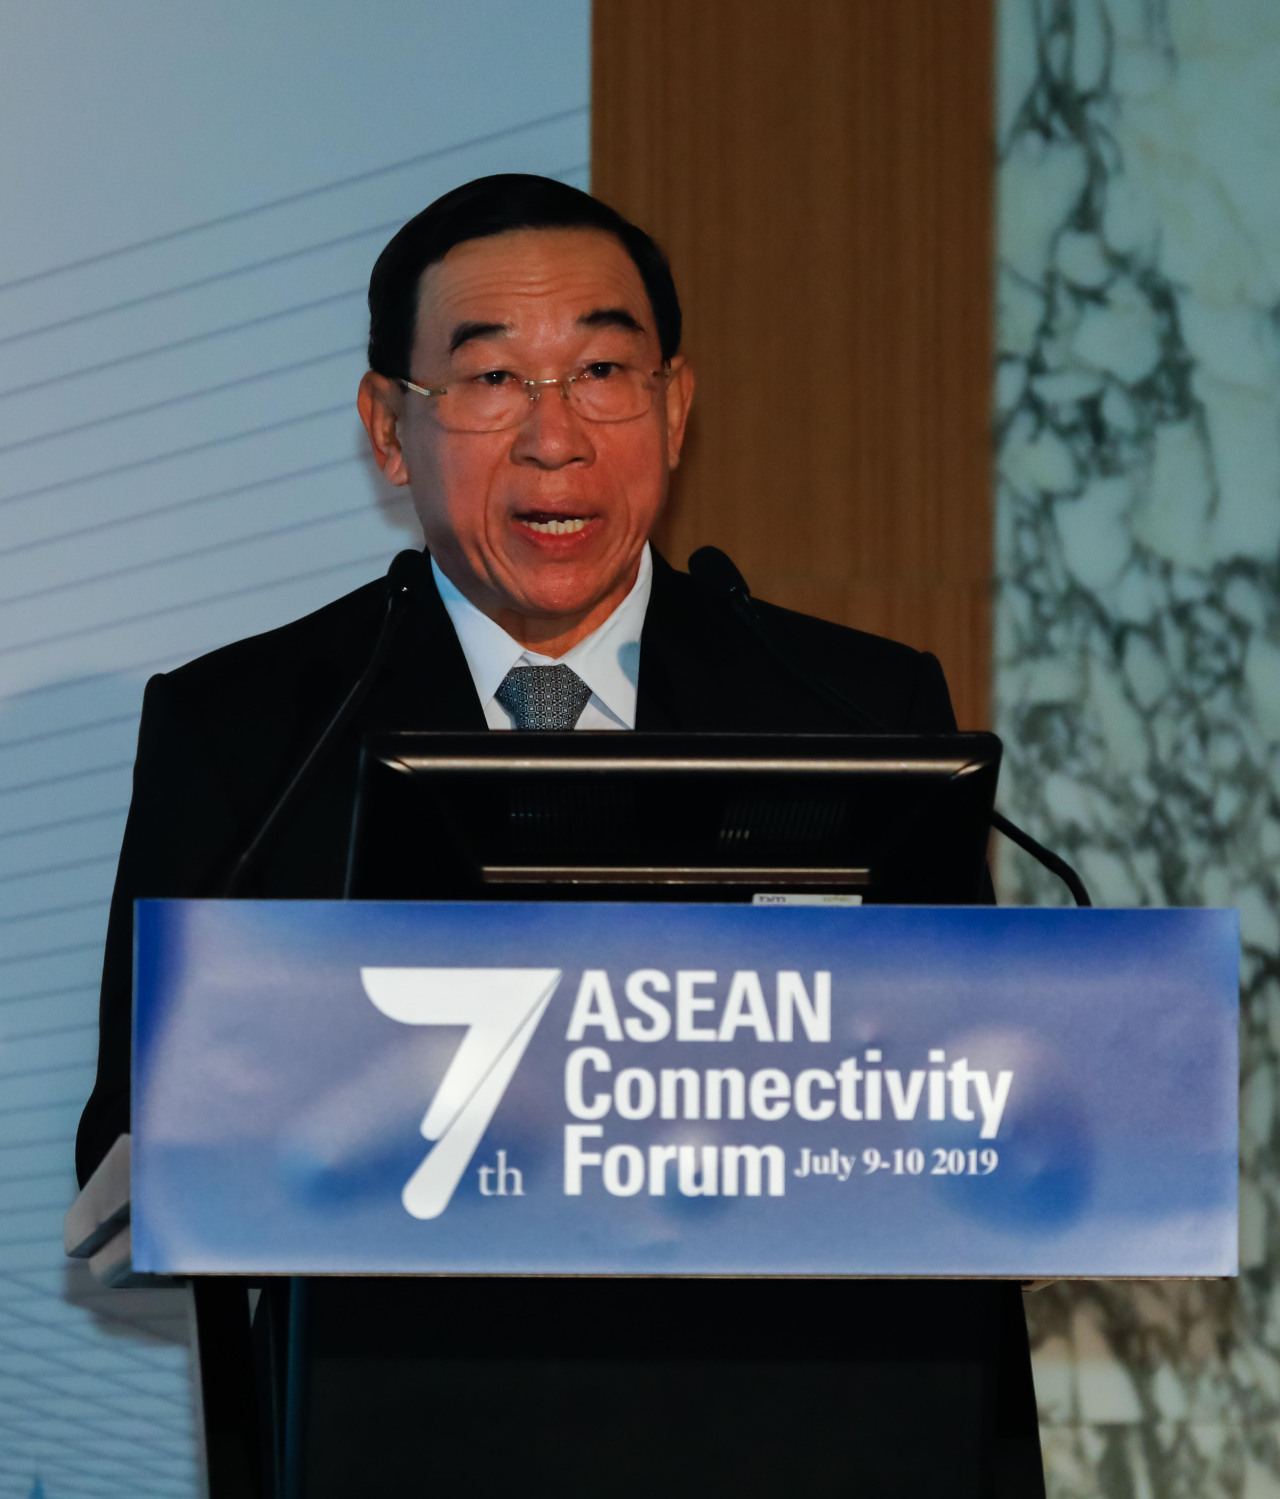 Laos Minister of Public Works and Transport Bounchanh Sinthavong delivers a keynote speech at the 7th Association of Southeast Asian Nations Connectivity Forum in Seoul on July 9. (ASEAN-Korea Center)